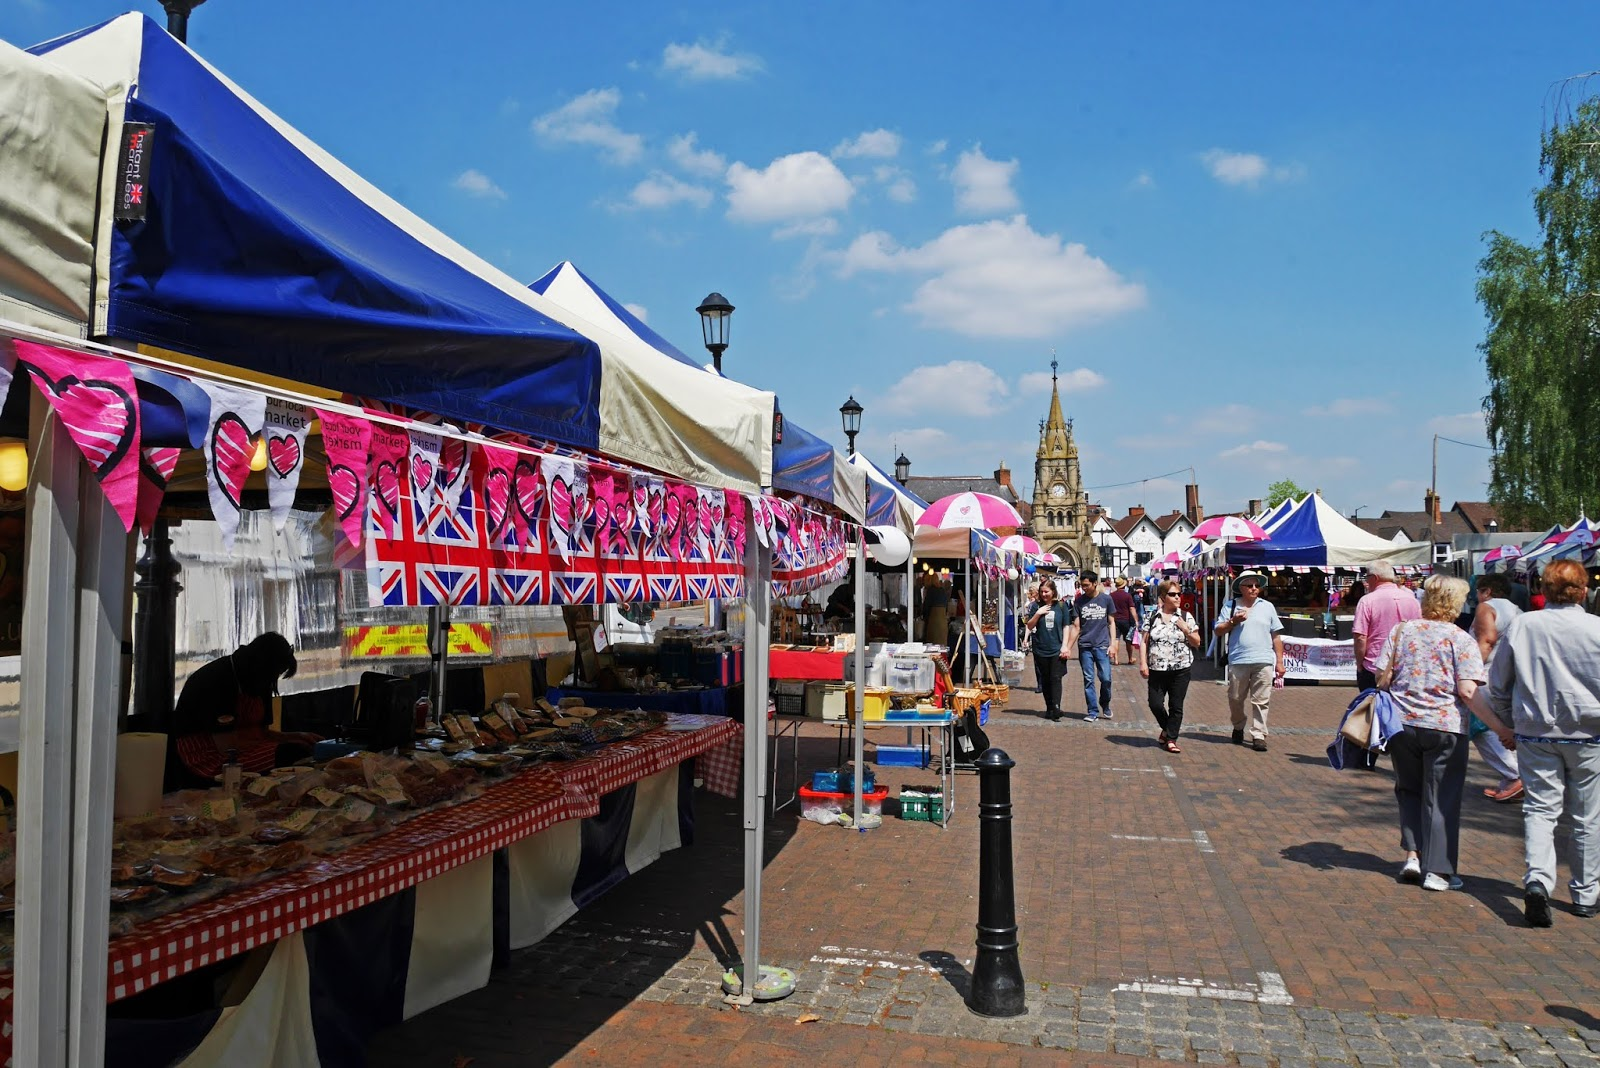 Stratford-upon-Avon Saturday market